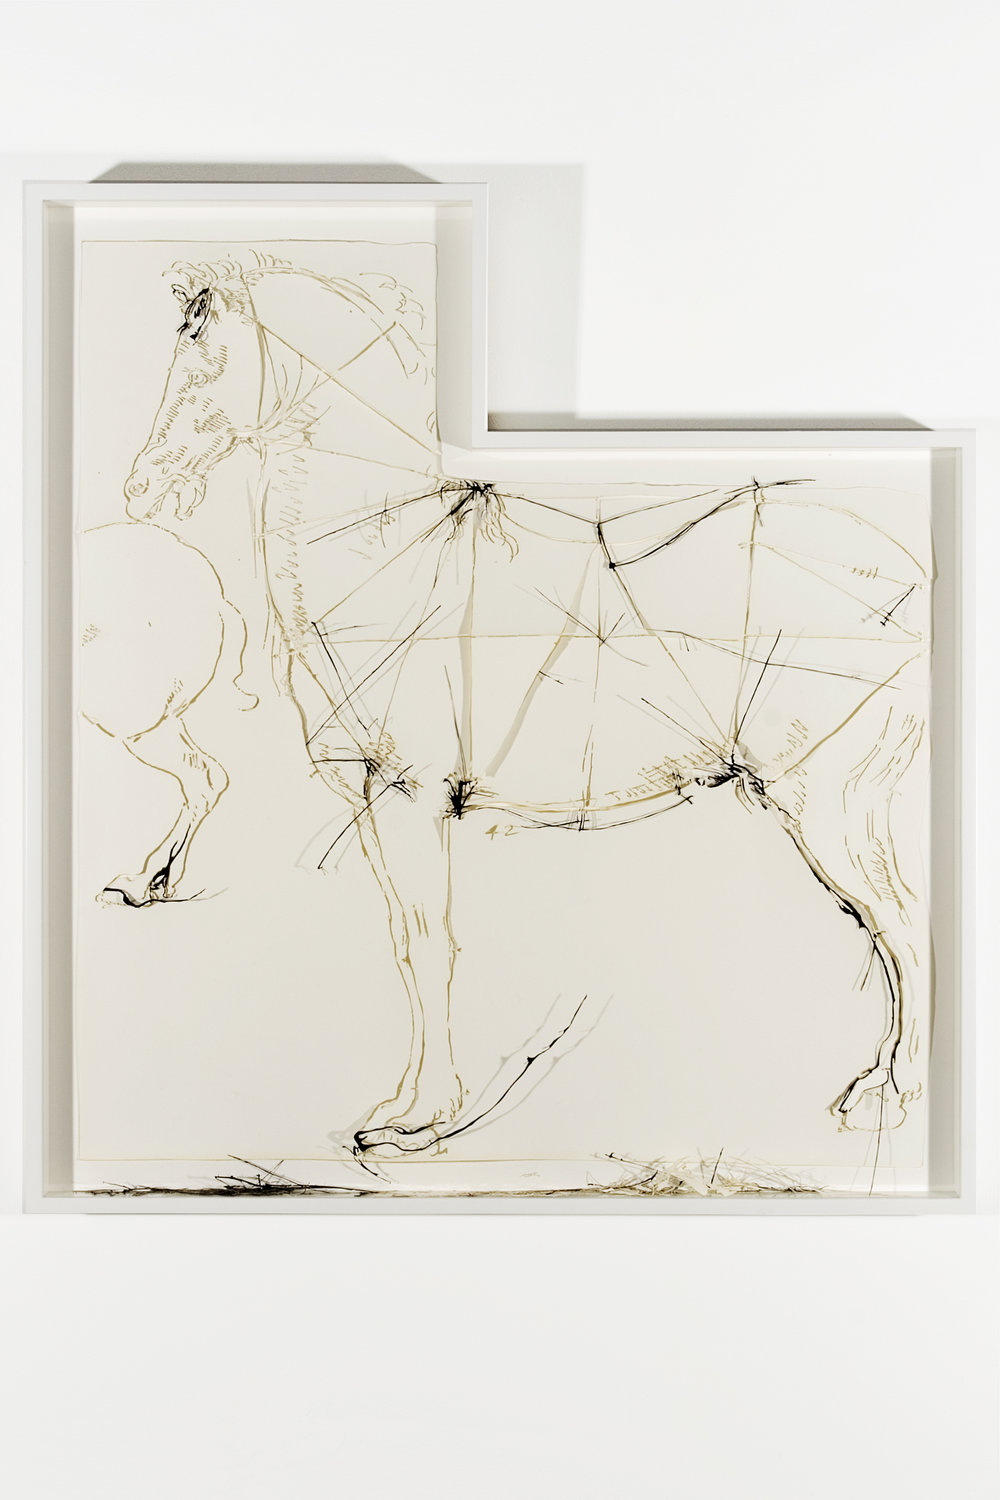 """Collapsed Drawing: """"Proportional Analysis of a Horse"""" (Leonardo da Vinci), 2007 laser-cut paper and laser-cut archival digital print mounted on museum board 107 x 93,5 cm - 42 1/8 x 36 3/4 inches (framed)"""